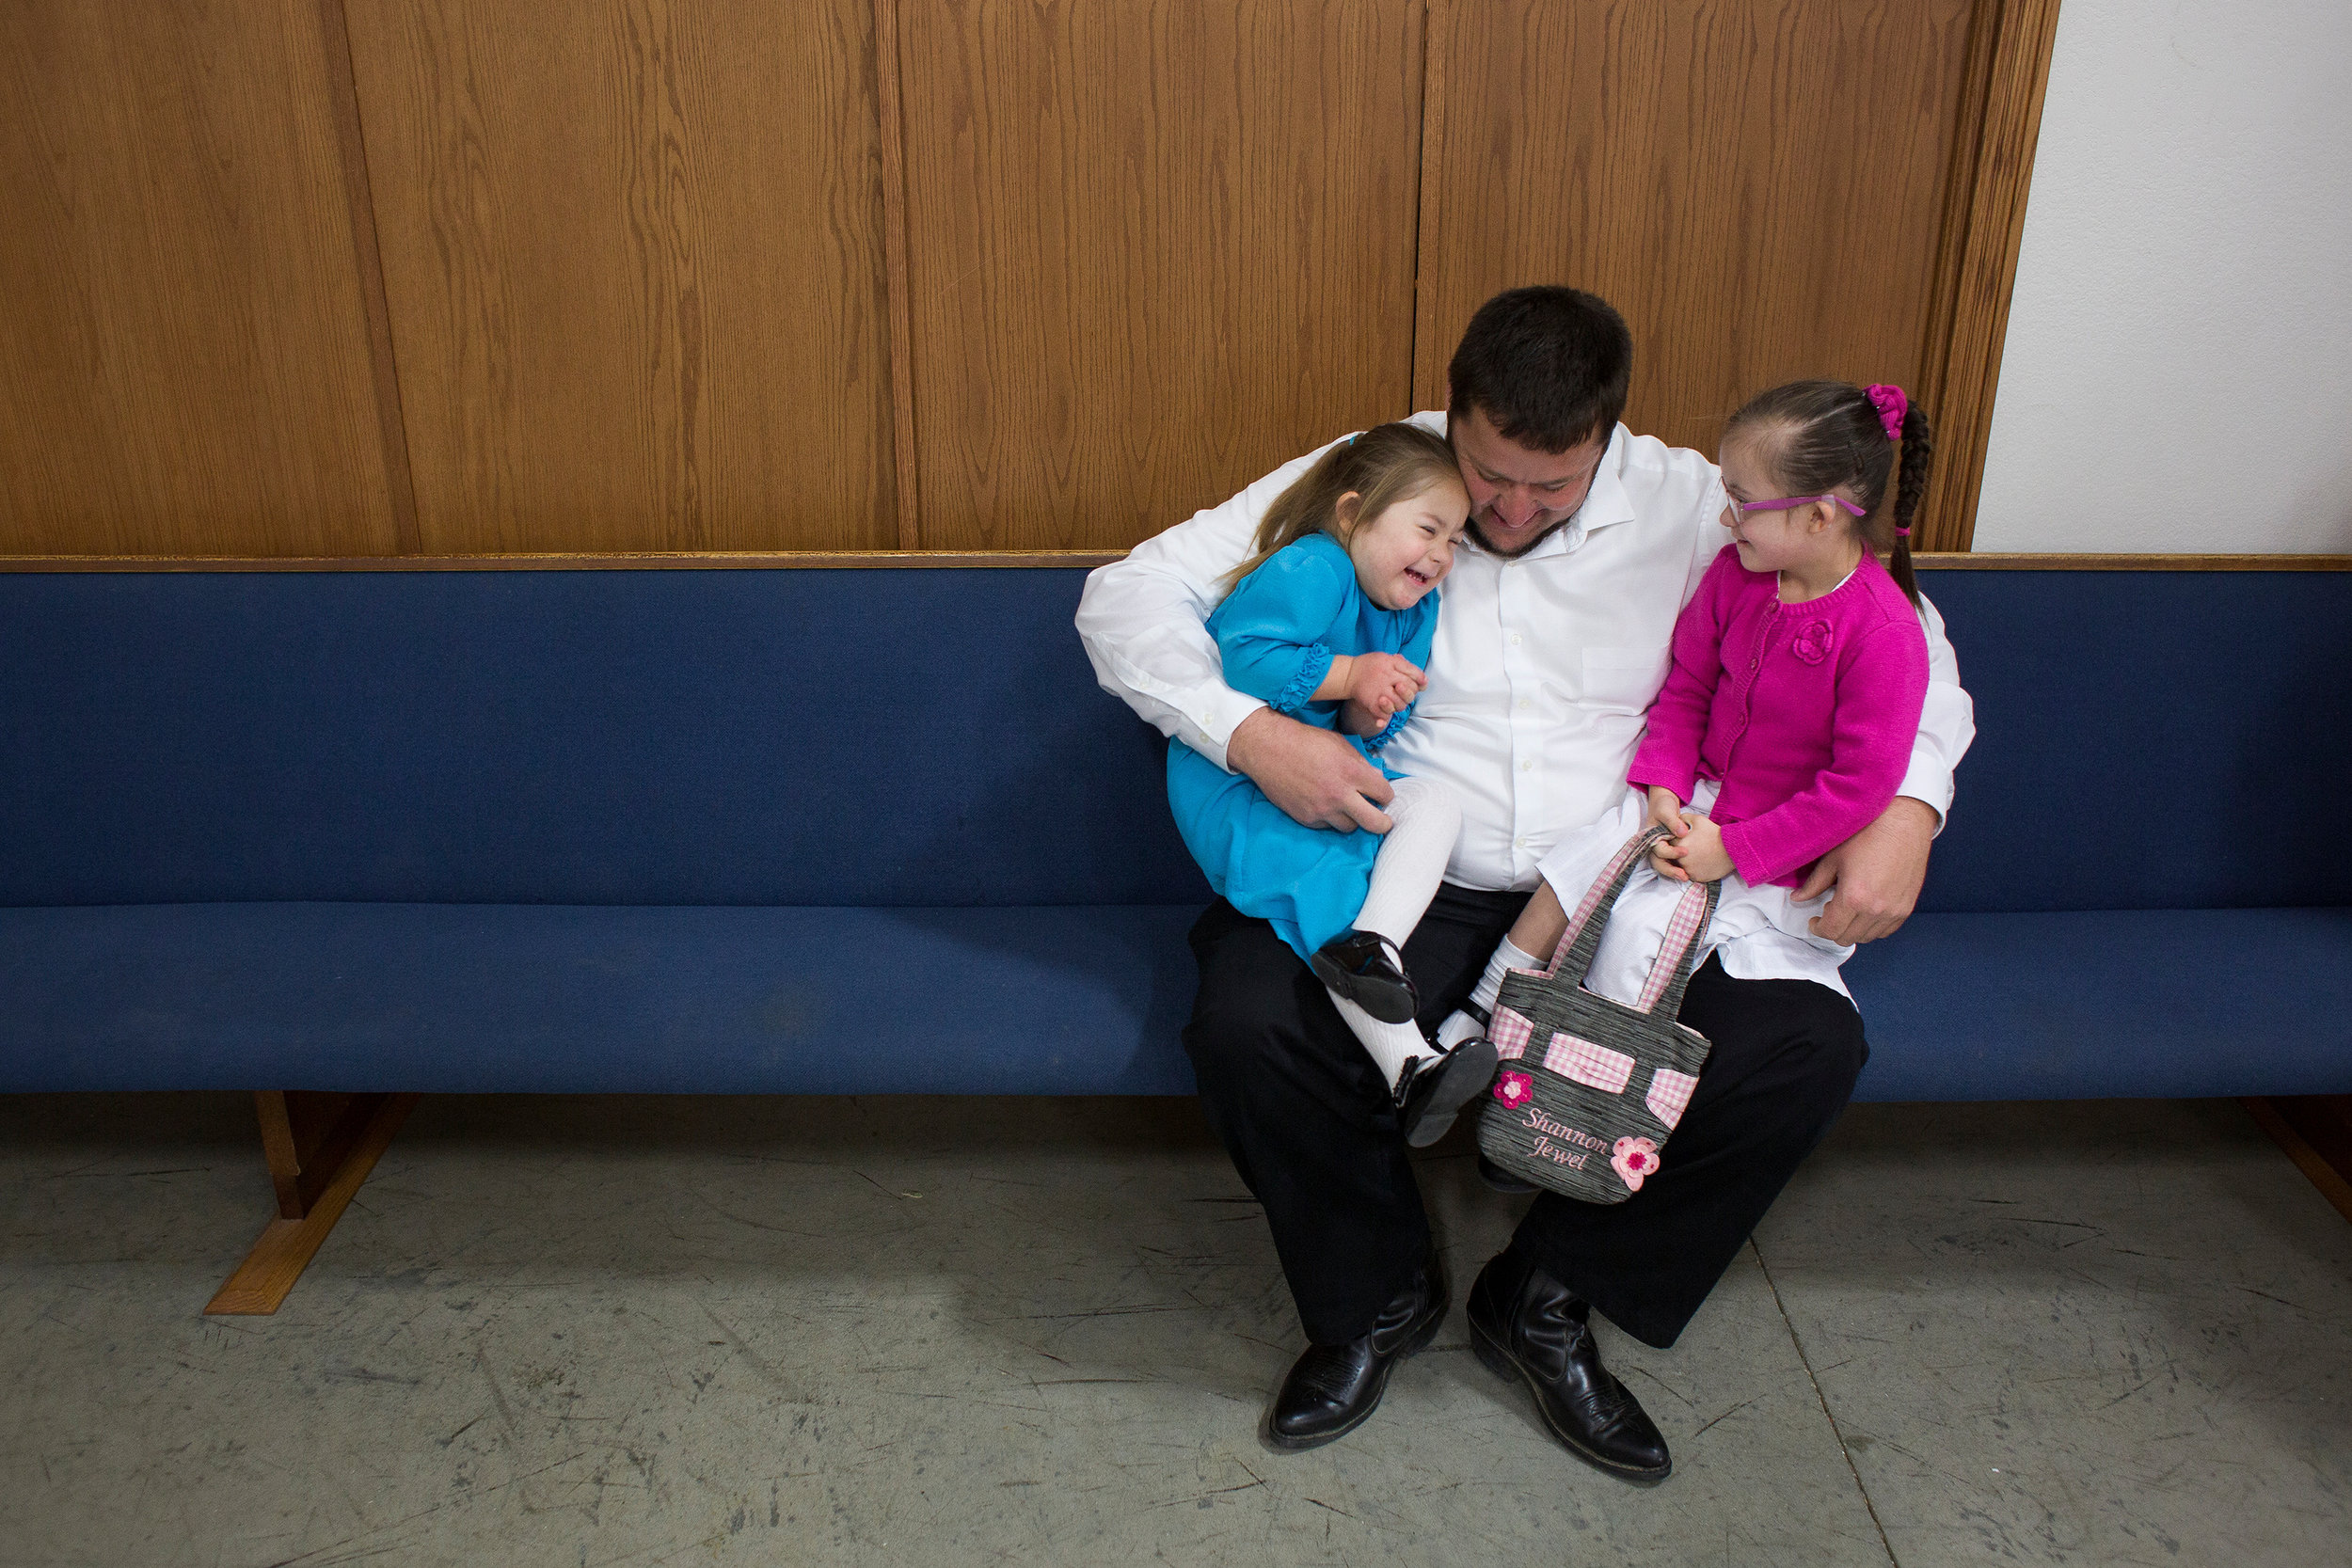 Stanley balanced Andrea and Shannon Wagler of Loogootee, 6, on his lap following a Sunday morning service Oct. 29 at Mt. Nebo Mennonite Church near Newberry, on the Scotland-Newberry Road. Stanley said Andrea and Shannon are two of three girls who attend Mt. Nebo who have Down syndrome.